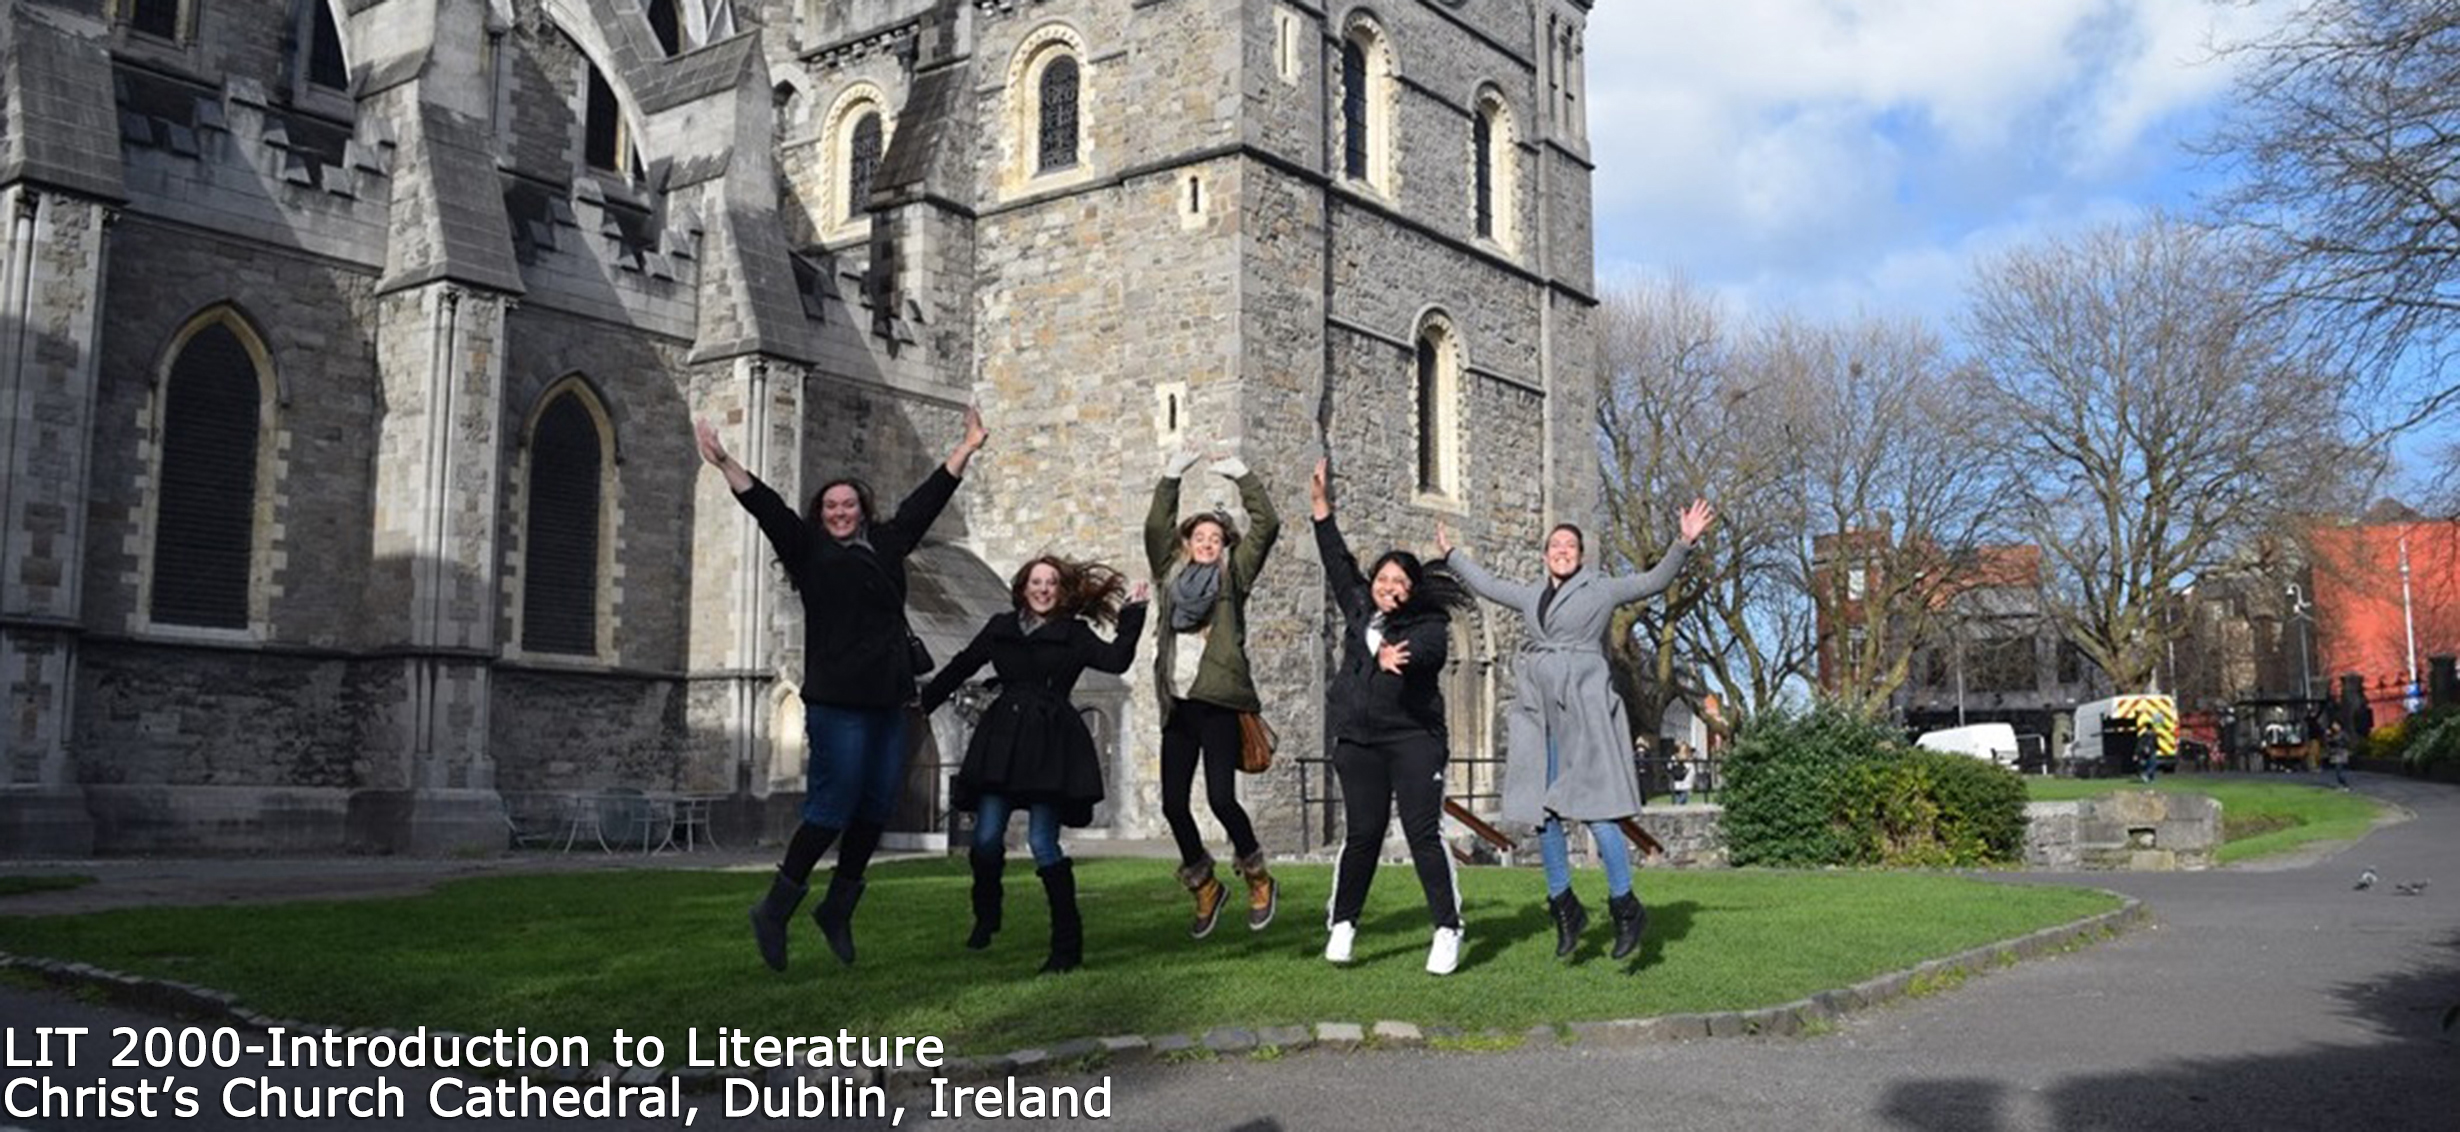 LIT 2000 - Introduction to Literature class at Christ's Church Cathedral, Dublin, Ireland